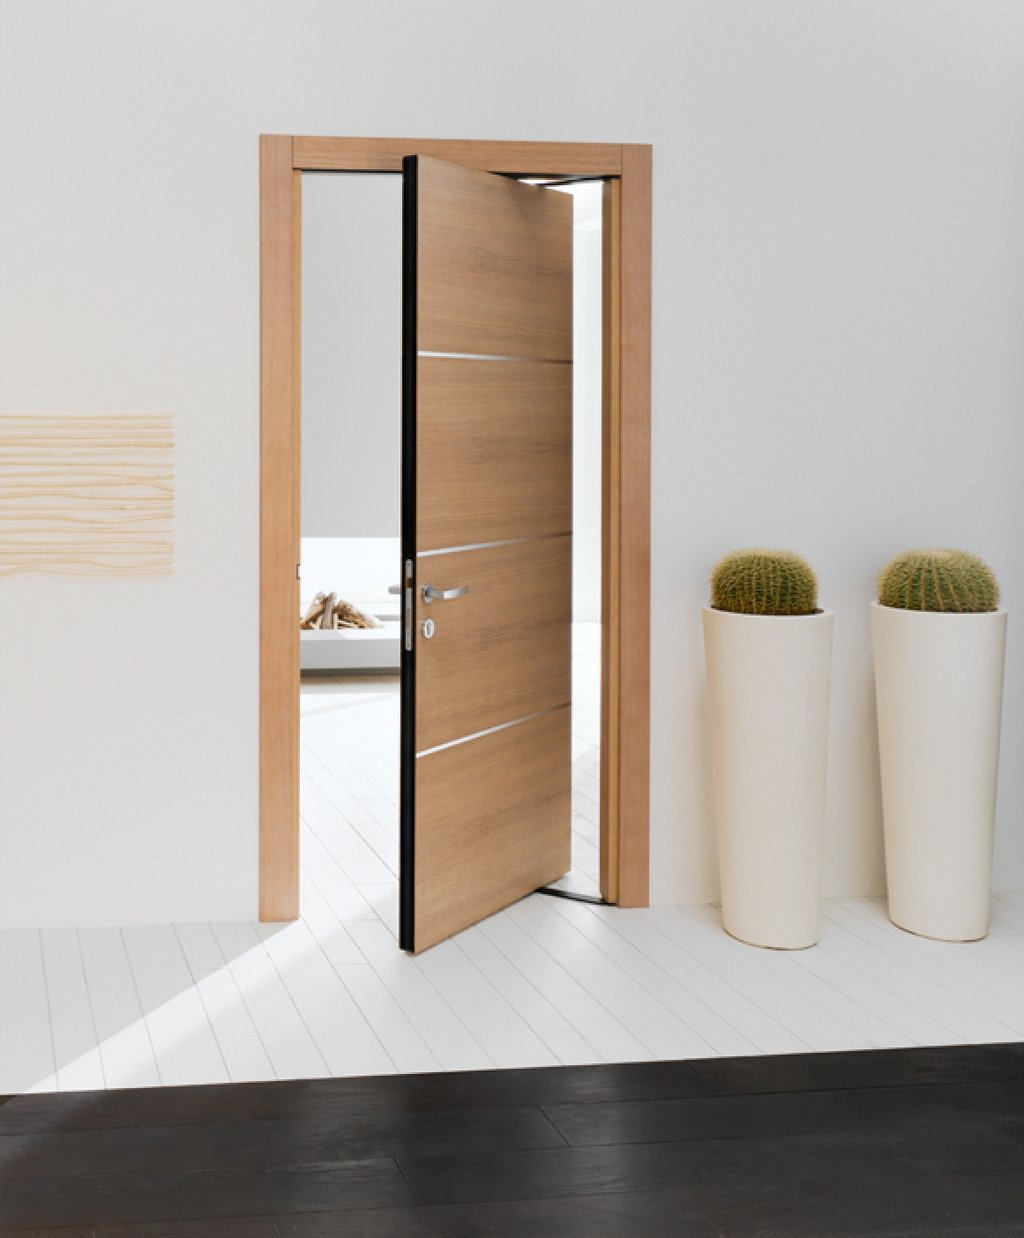 Bamboo lamp photo bamboo interior doors - Pinnwand modern ...